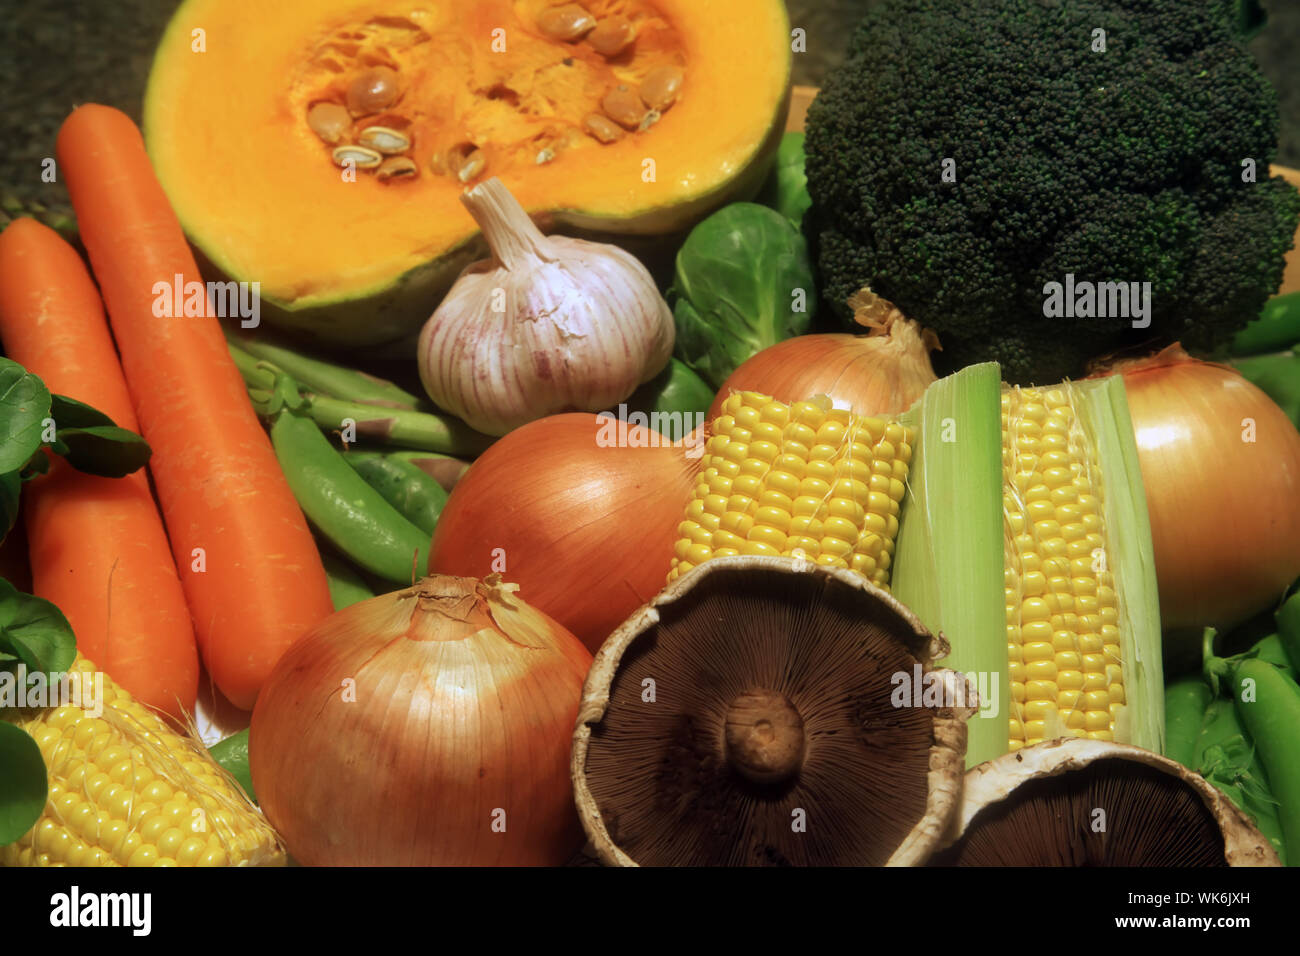 Common Vegetables Frequently Used for Cooking Stock Photo